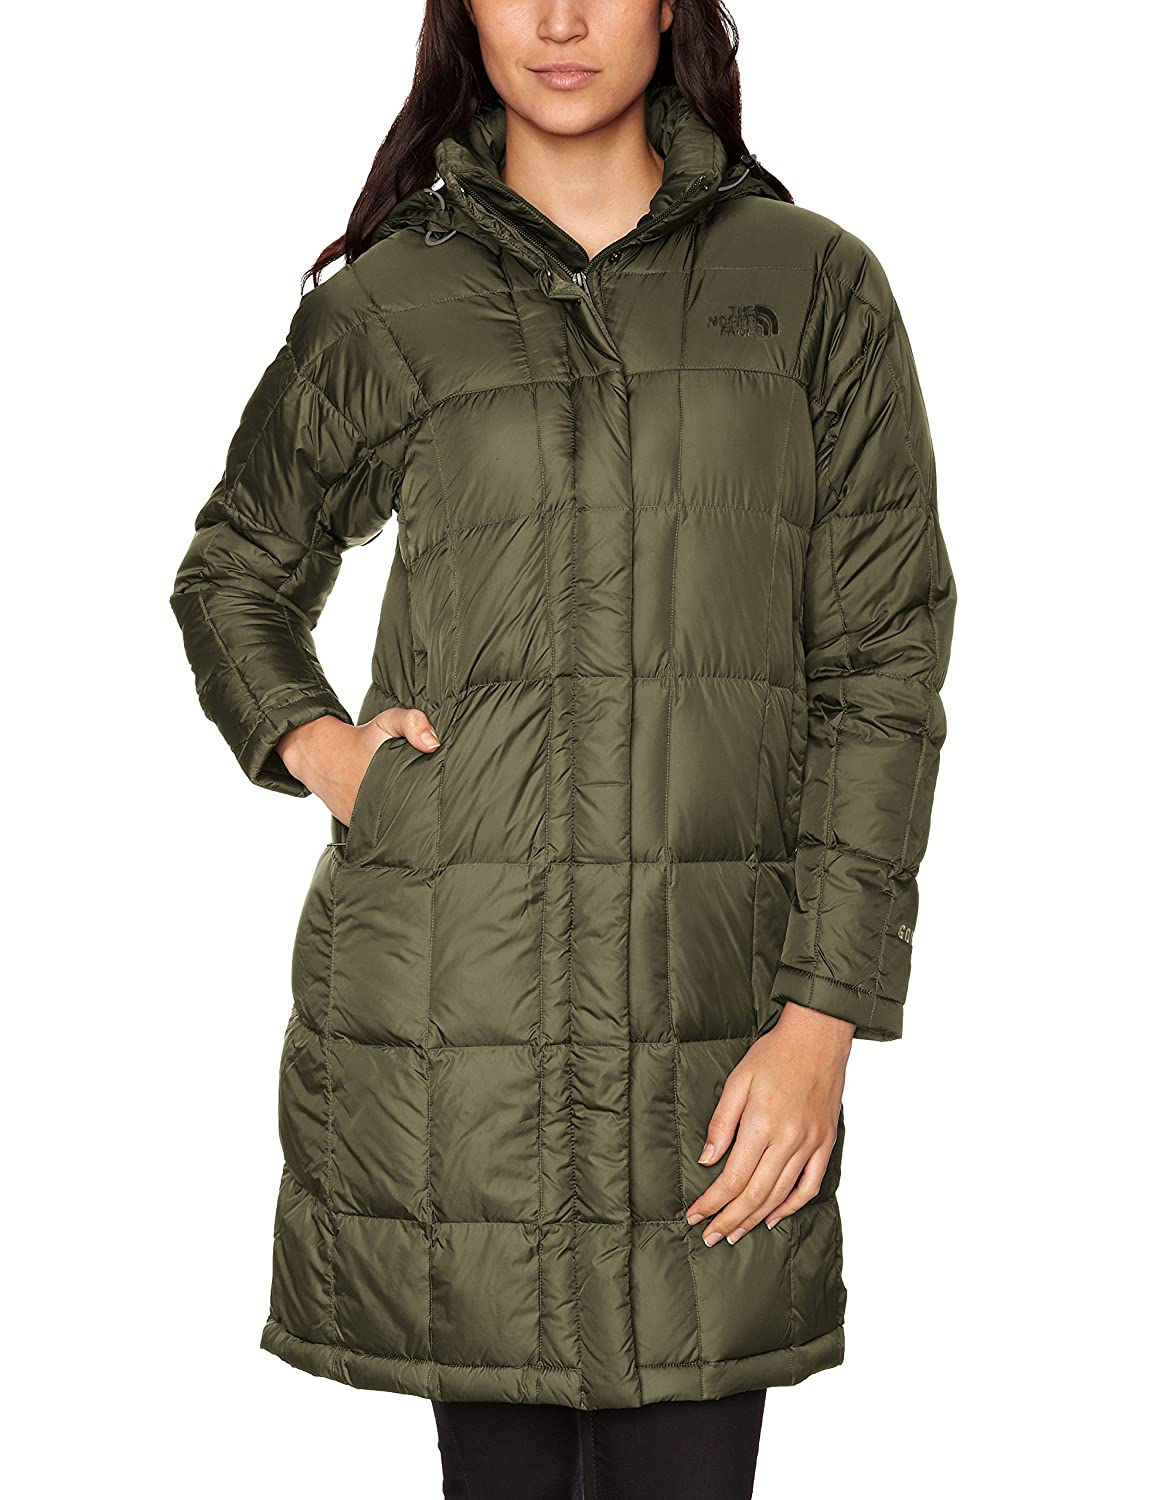 - Amazon.com : The North Face Women's Metropolis Parka II : Clothing